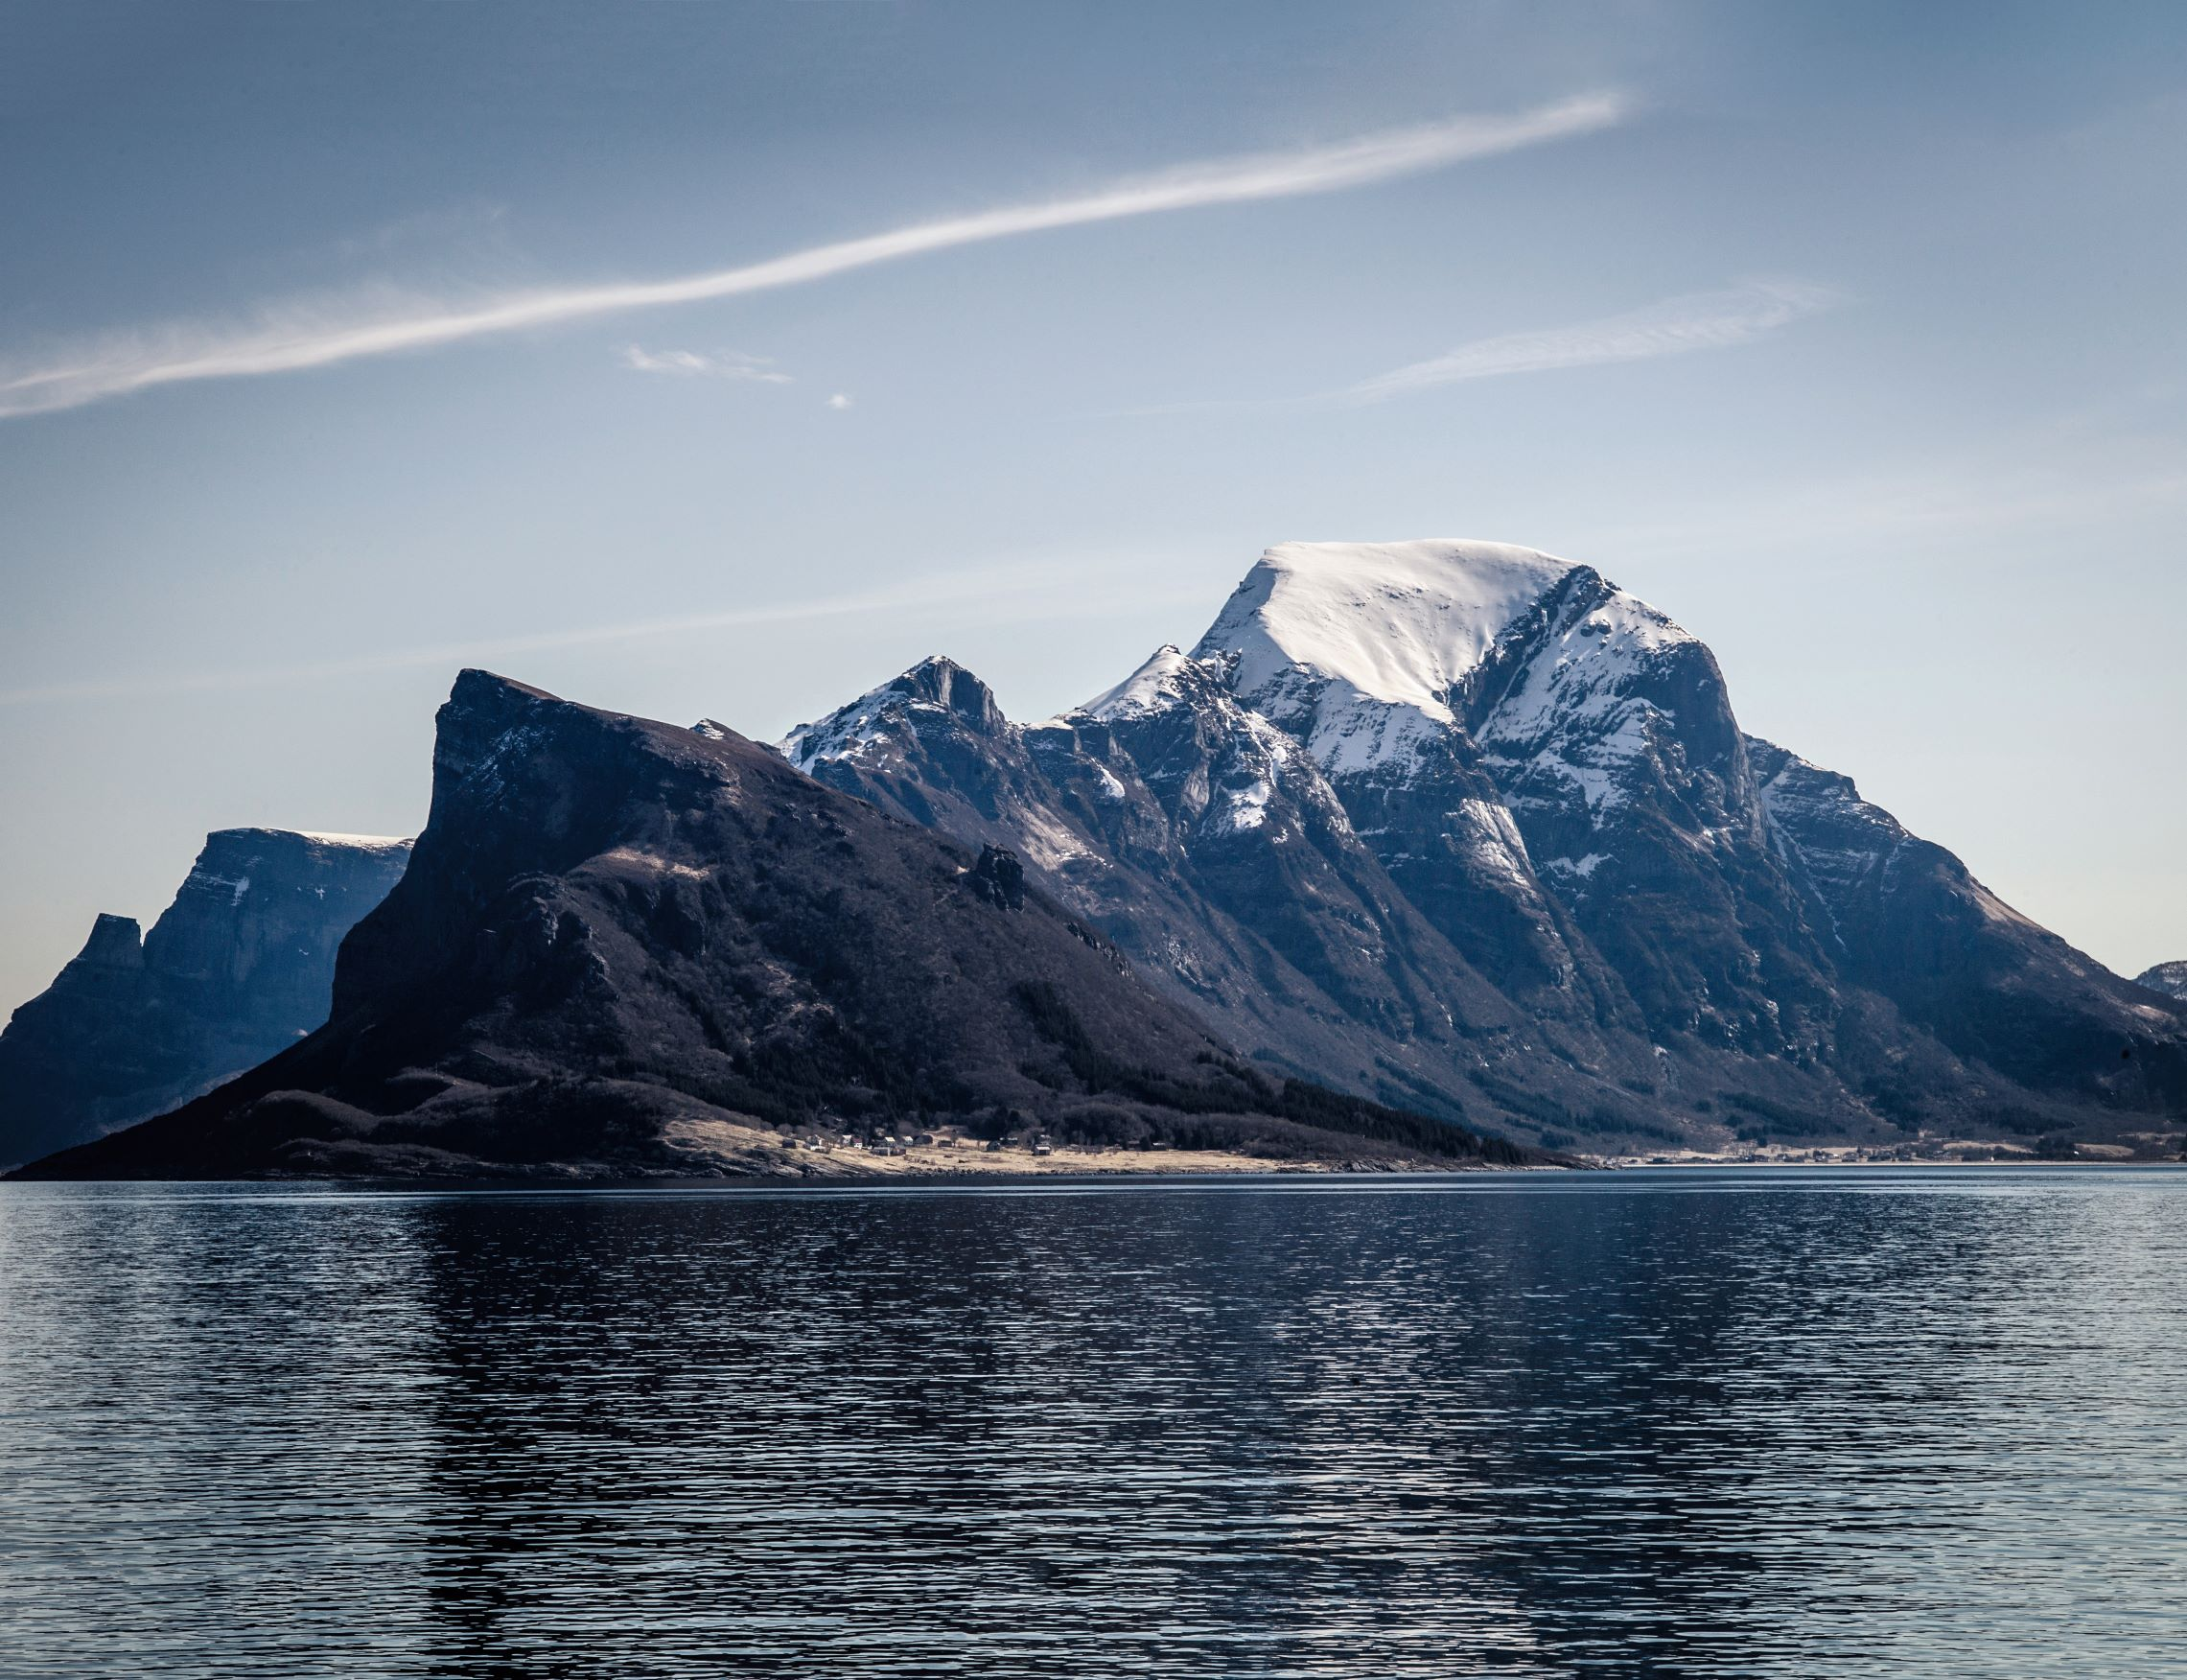 View from the Hurtigruten ferry boat, northern Norway, spring 2013. Photography by Magnus Nilsson